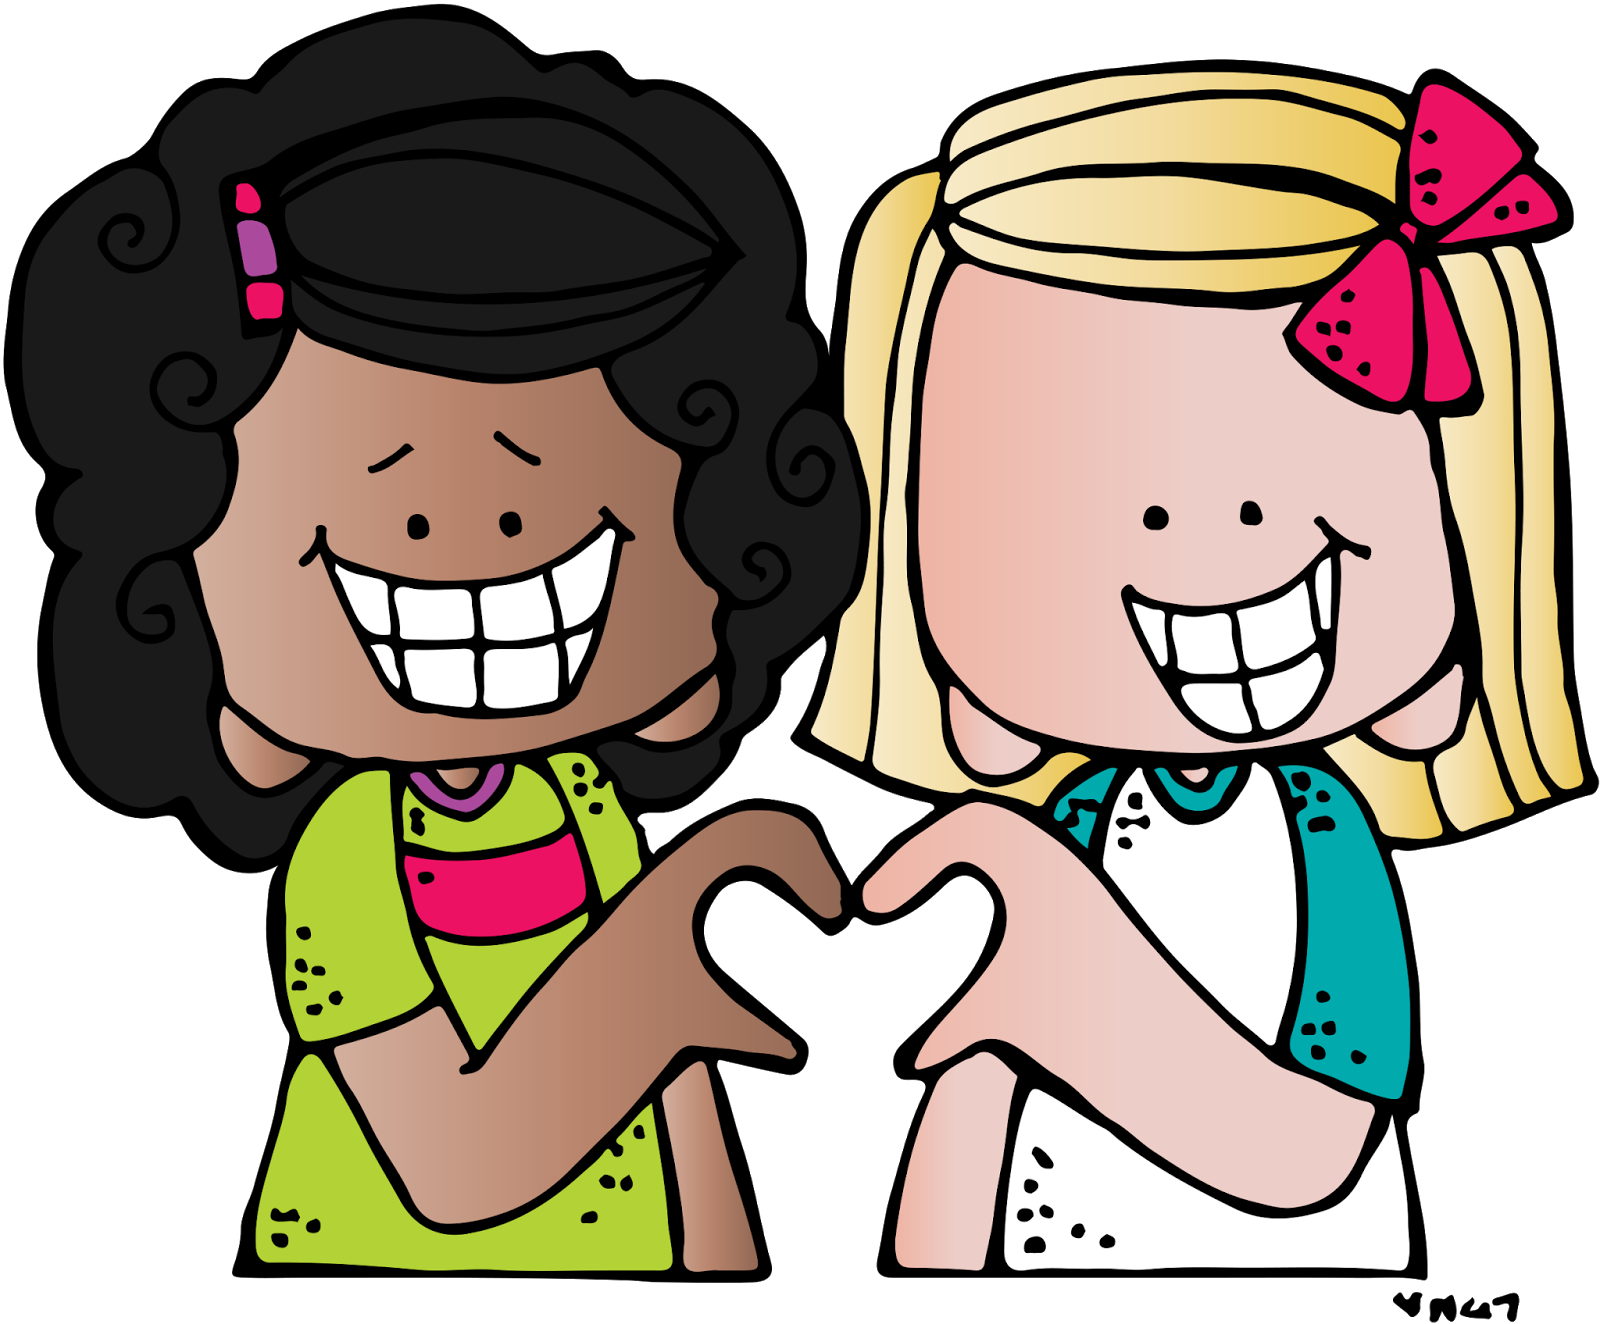 Red light clip art amp red light clip art clip art images clipartall - Love Everyone Free Clip Art My Heart Is Heavy My Friends I Feel Like This Is Needed In My Country Today